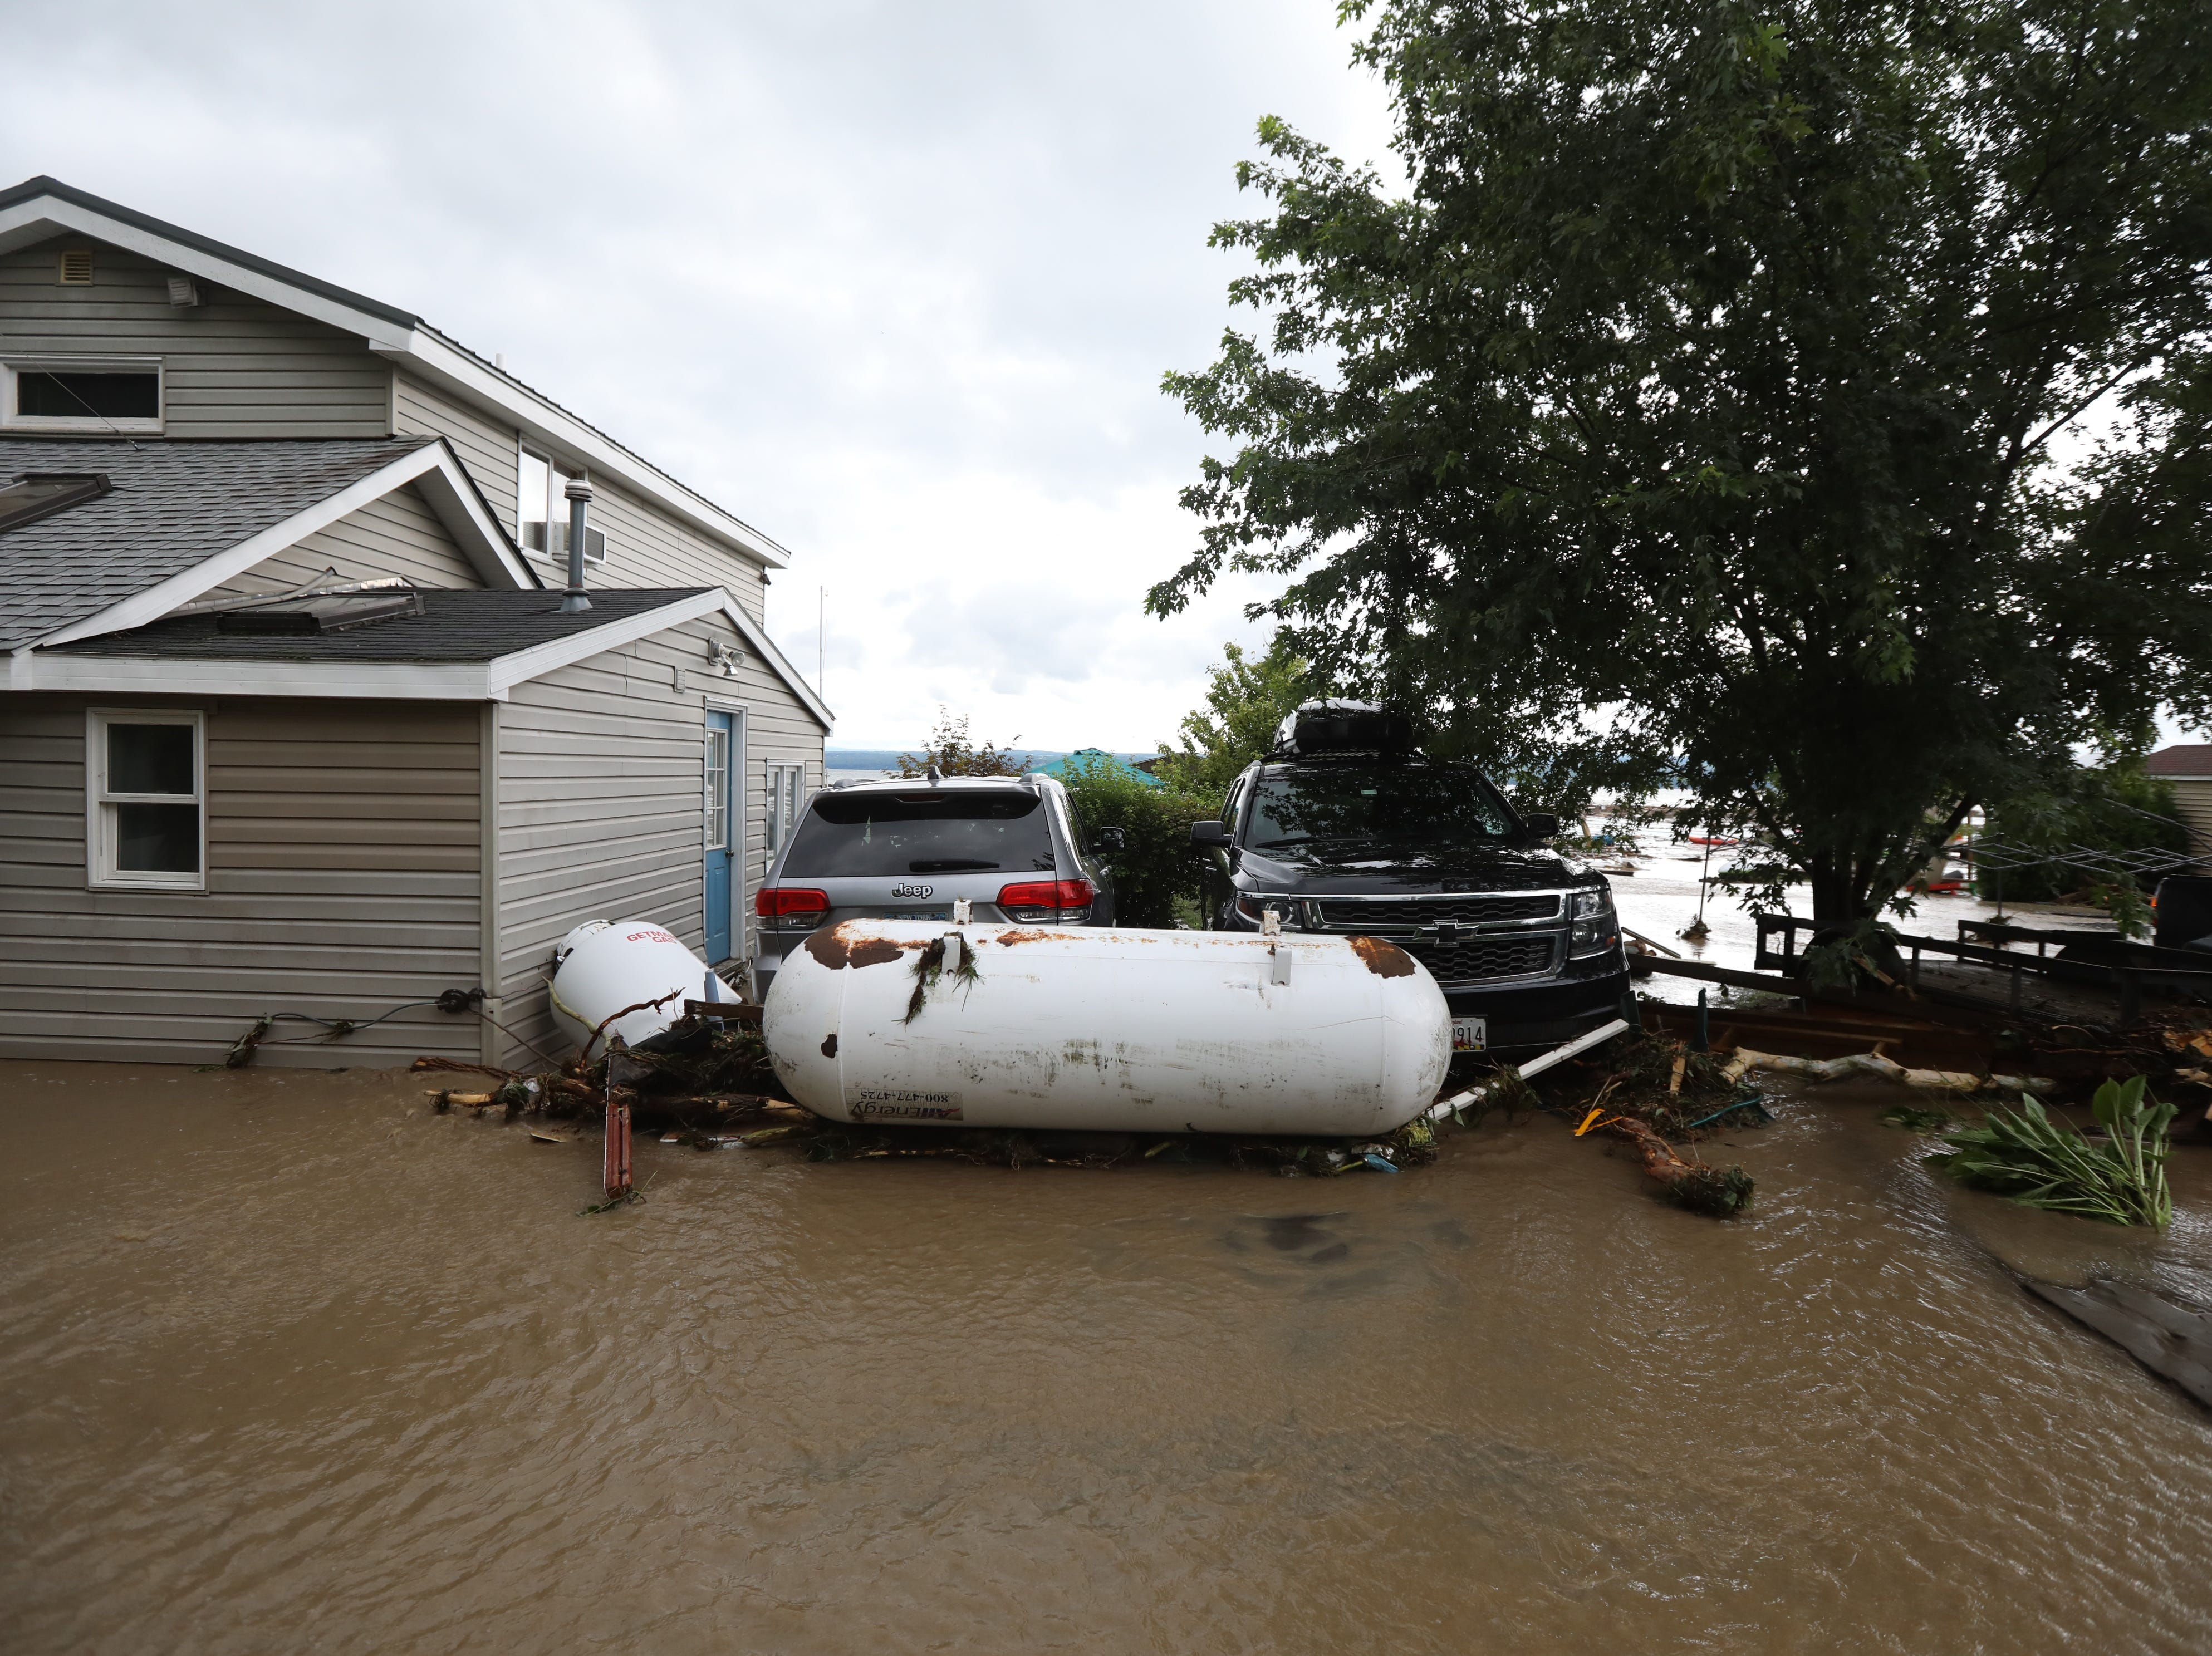 Propane tanks were pushed against vehicles on Lodi Point after heavy rain caused flooding and washing away at Lodi Point, New York on Tuesday, August 14, 2018.